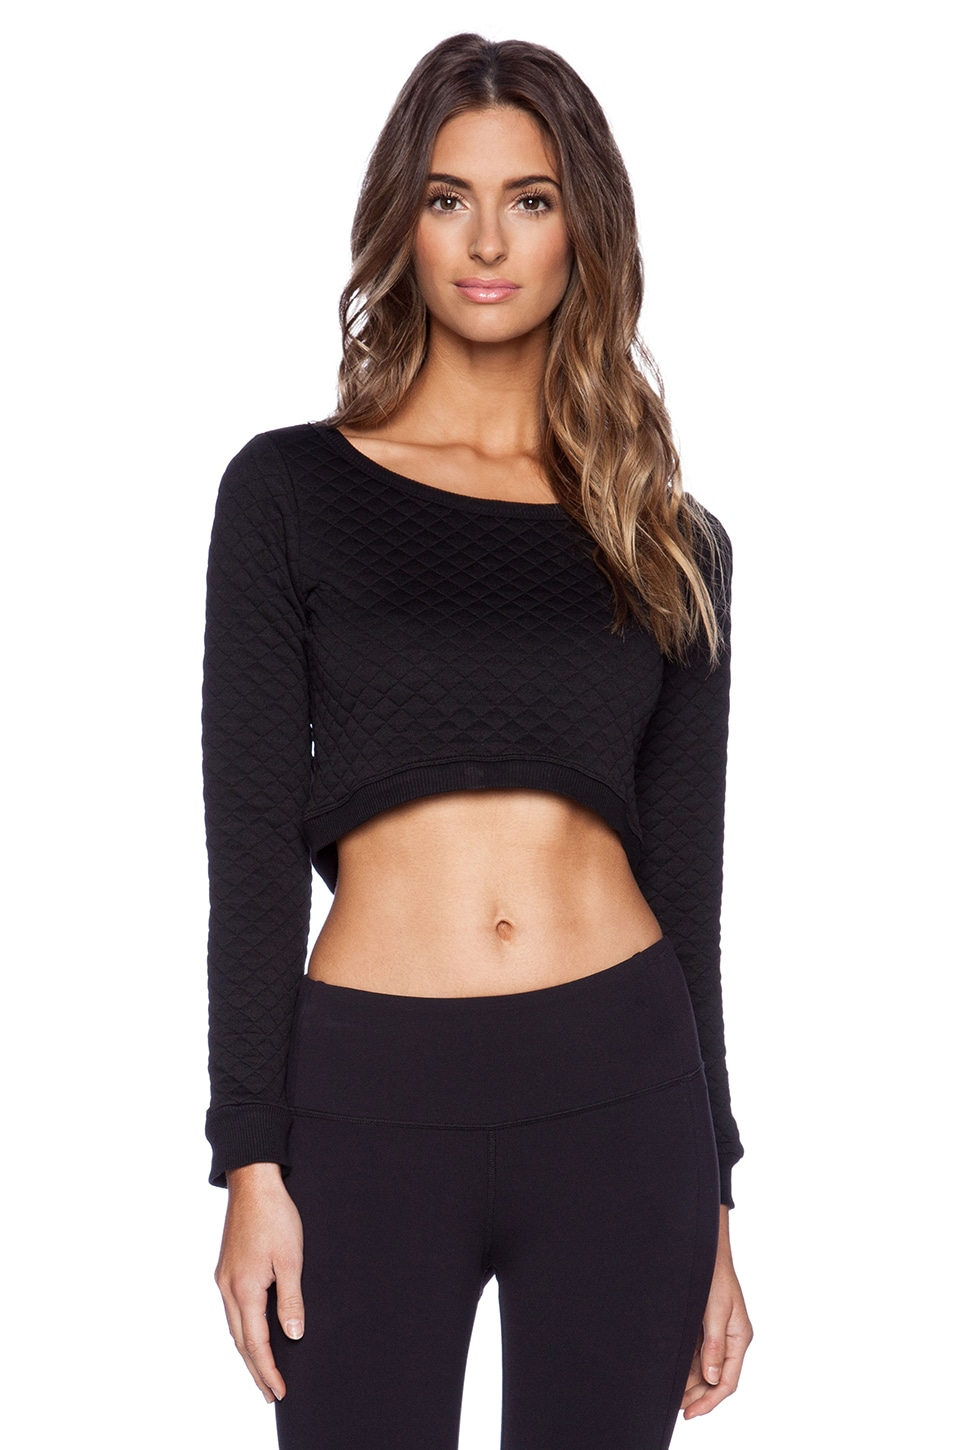 SOLOW Quilted Cropped Sweatshirt in Black